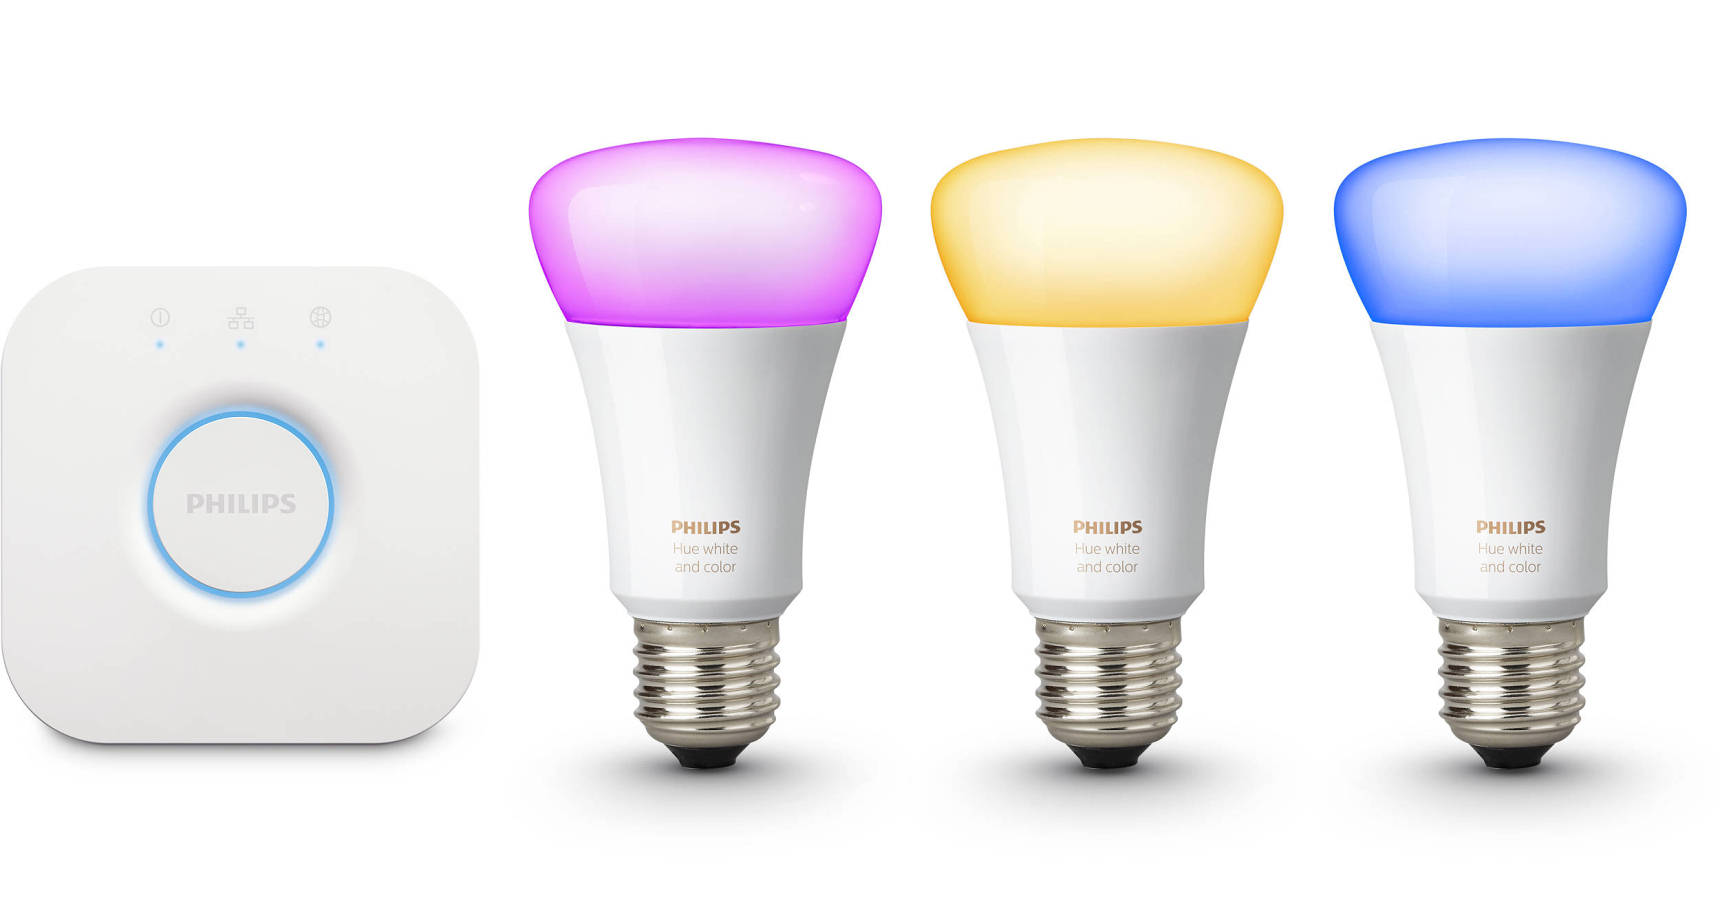 philips_464479_hue_white_color_ambiance_1302346